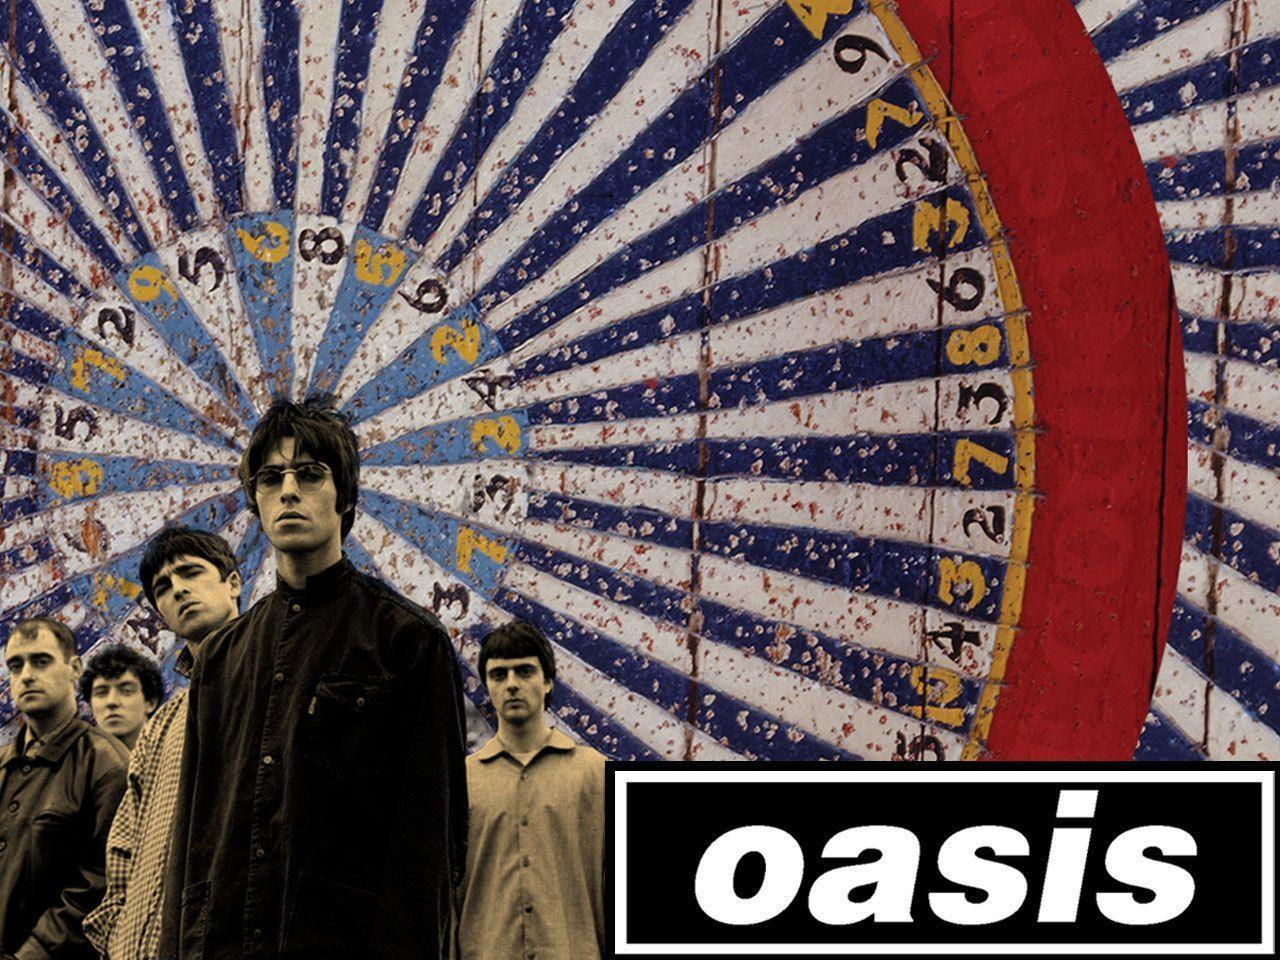 Oasis Wallpapers - Wallpaper Cave Oasis Band Album Cover